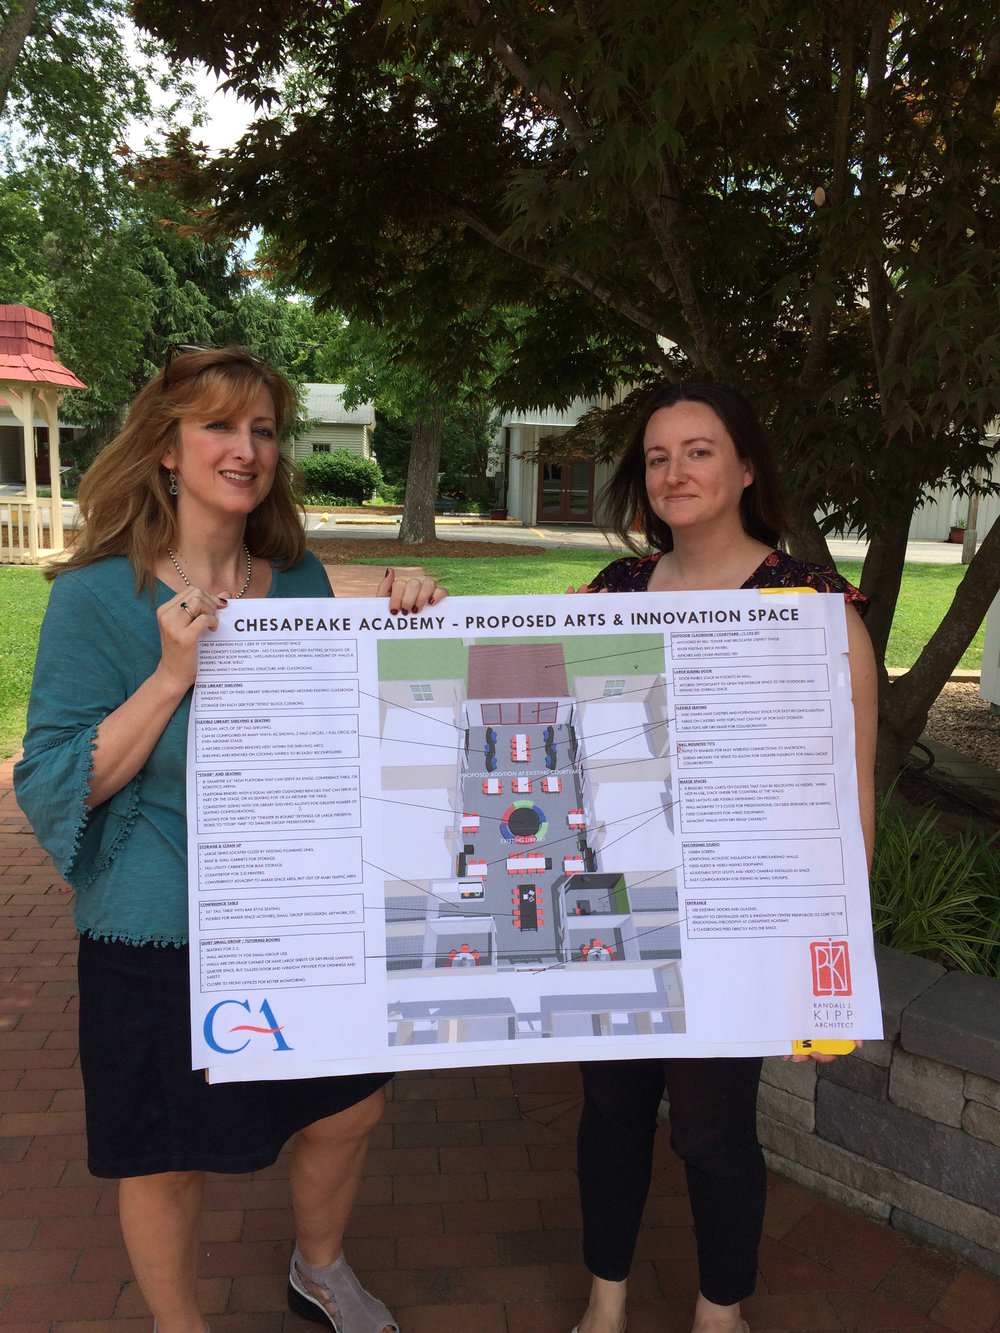 Chesapeake Academy's Julianne Duvall, Head of School, and Kimberly Dynia, Instructional Technology Coordinator, display plans for the proposed Arts & Innovation Space.  Read More »